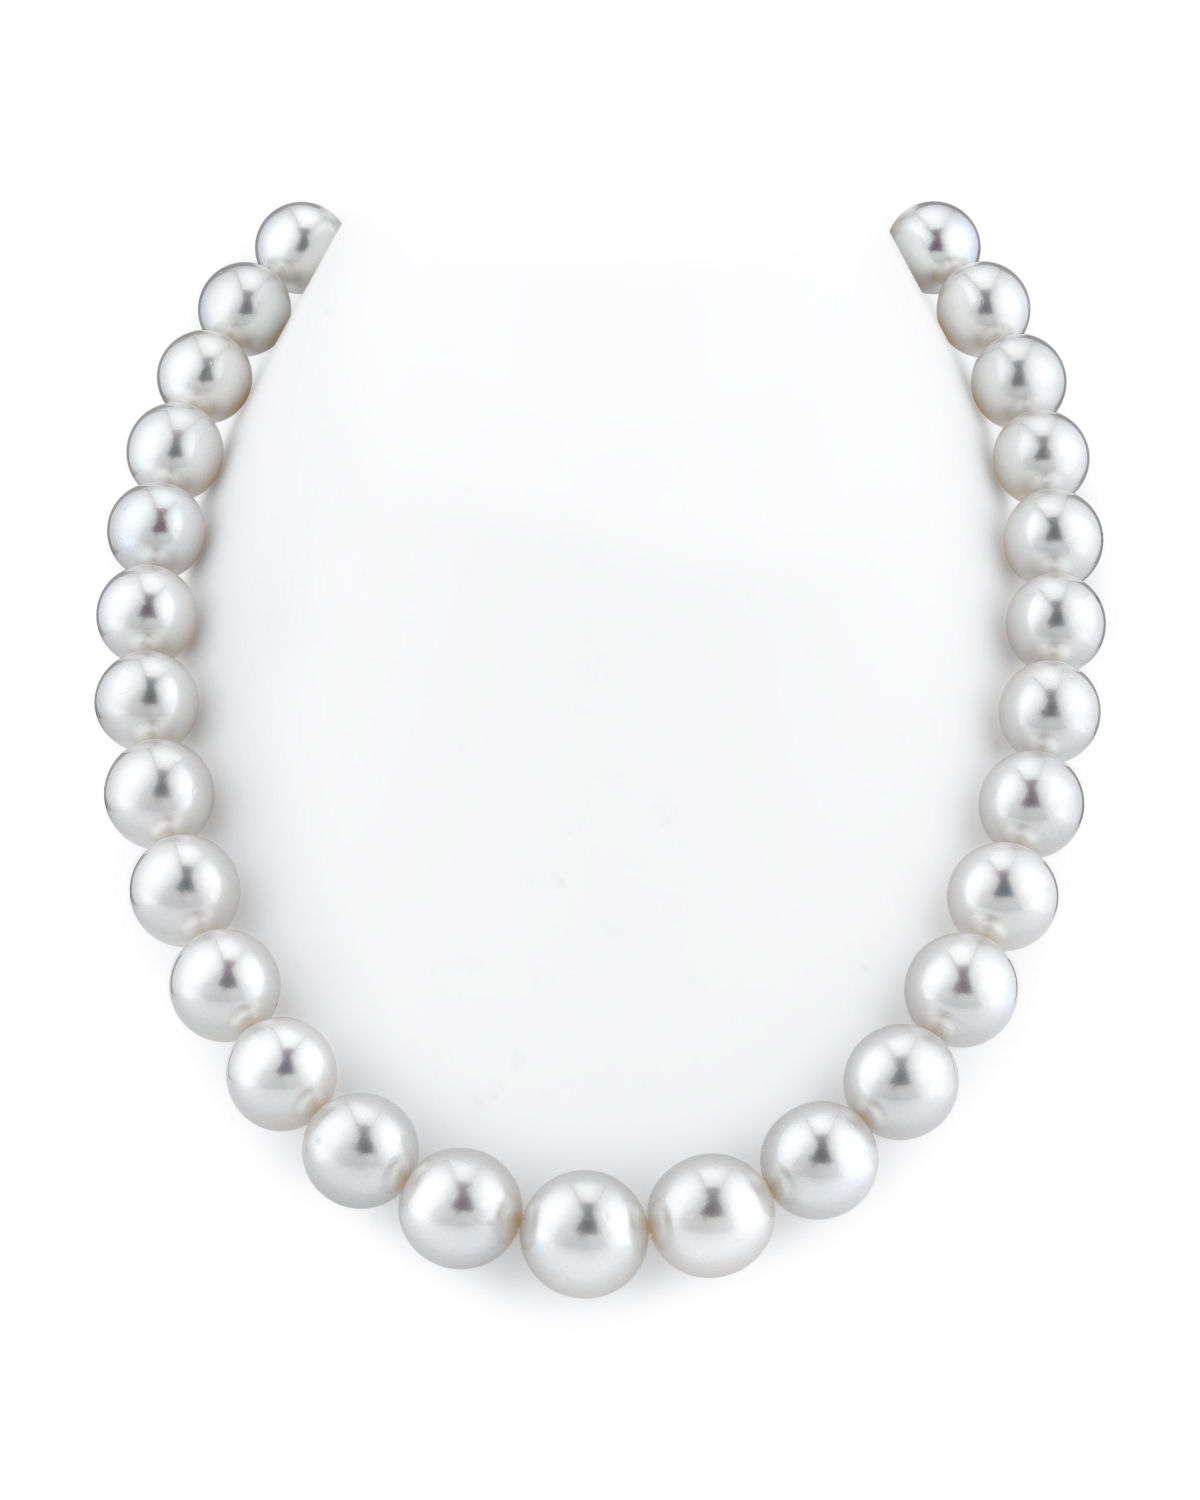 12-15mm White South Sea Pearl Necklace - AAAA Quality